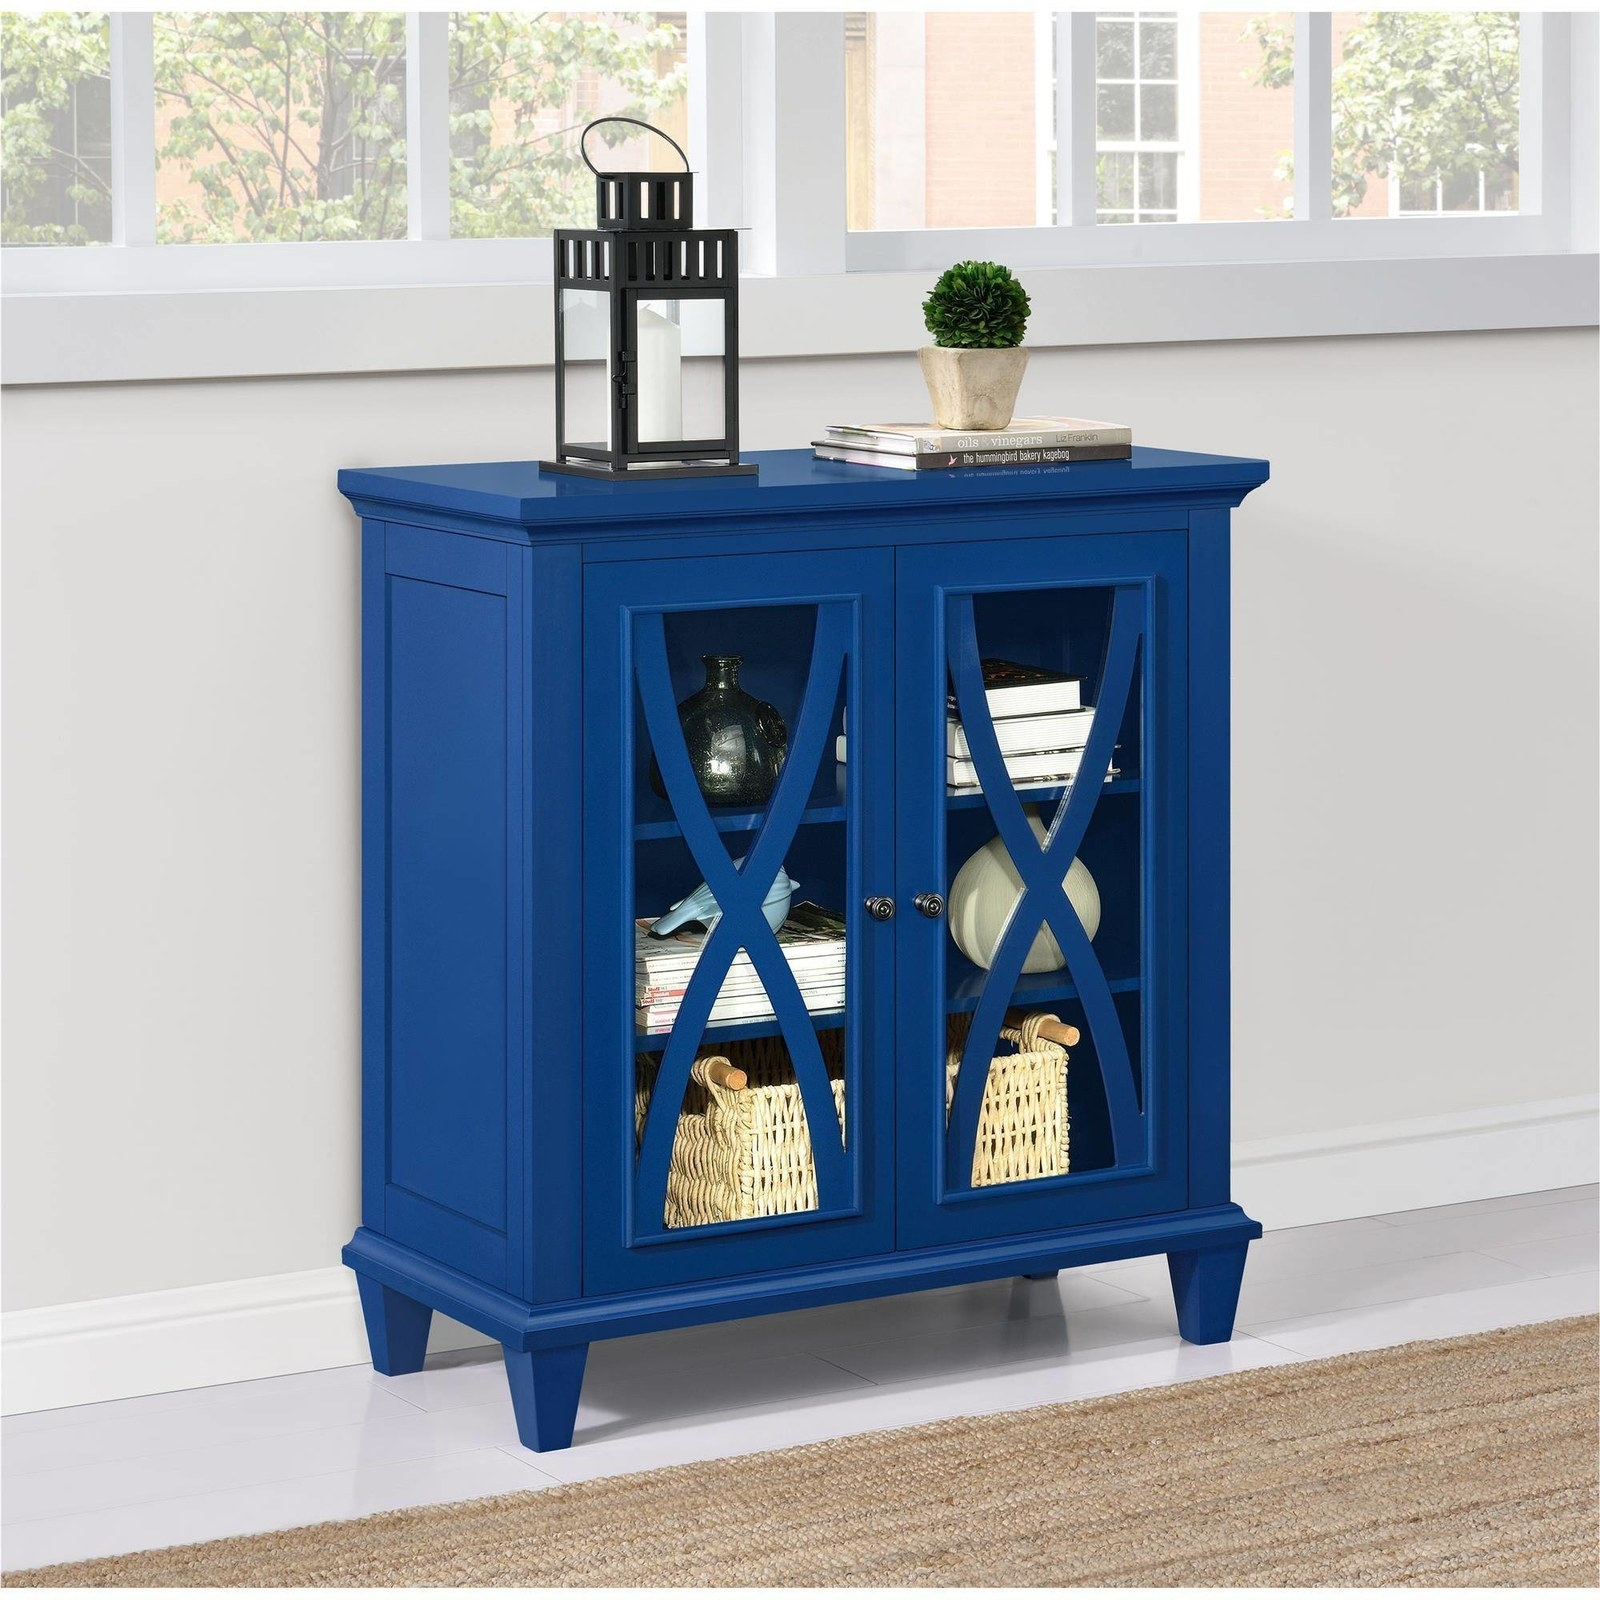 cobalt cabinet with windows and cross wood over the glass